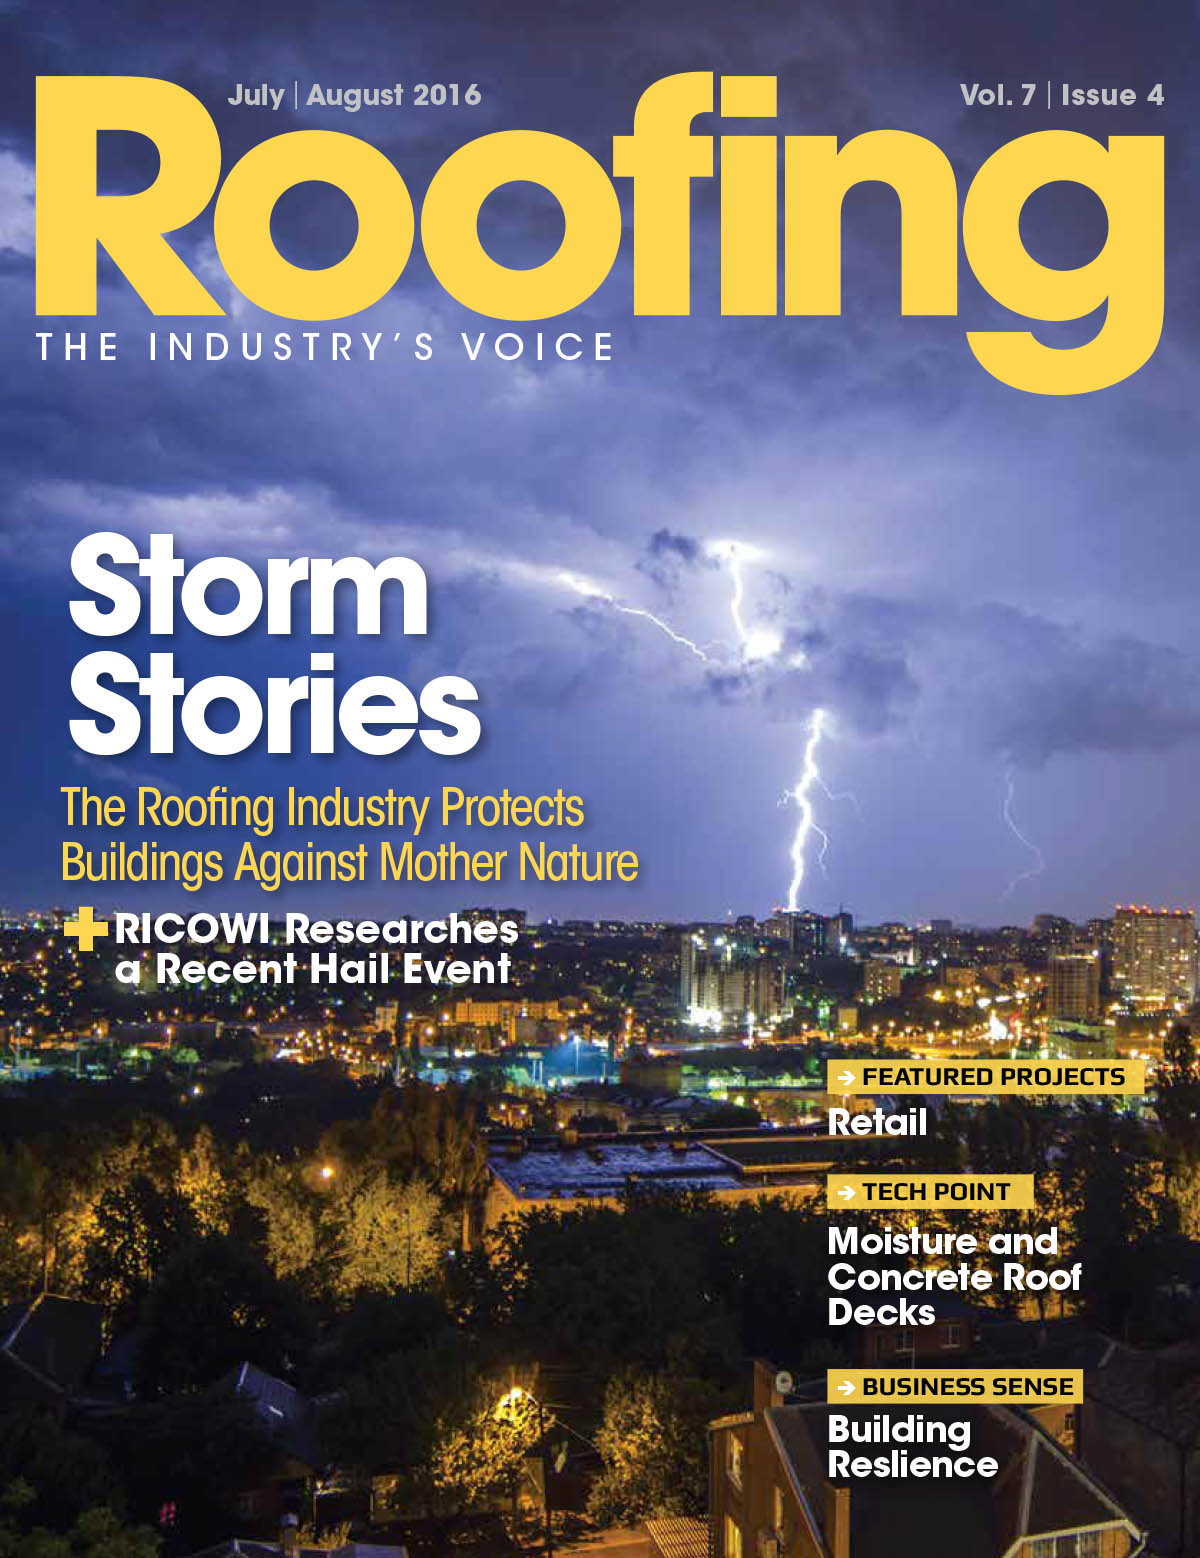 Roofing July/August 2016